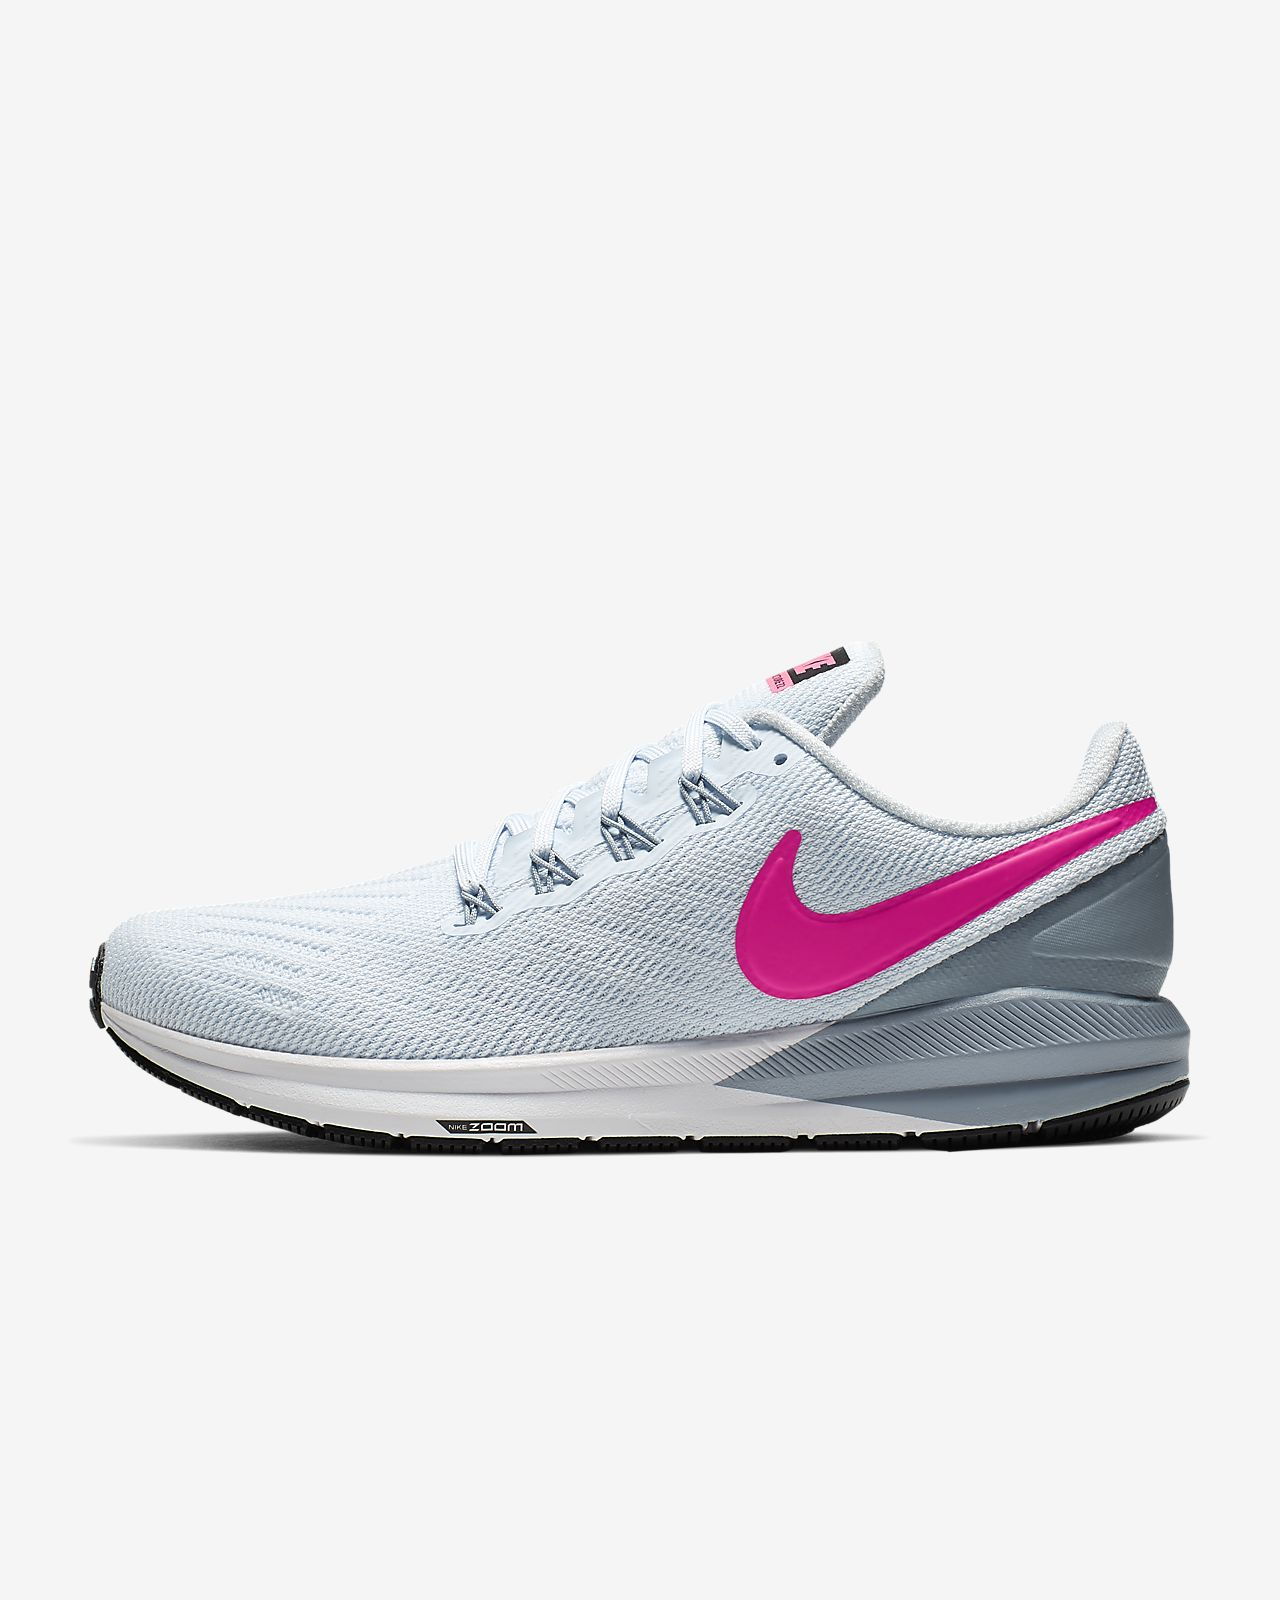 1c7f14286 Nike Air Zoom Structure 22 Women's Running Shoe